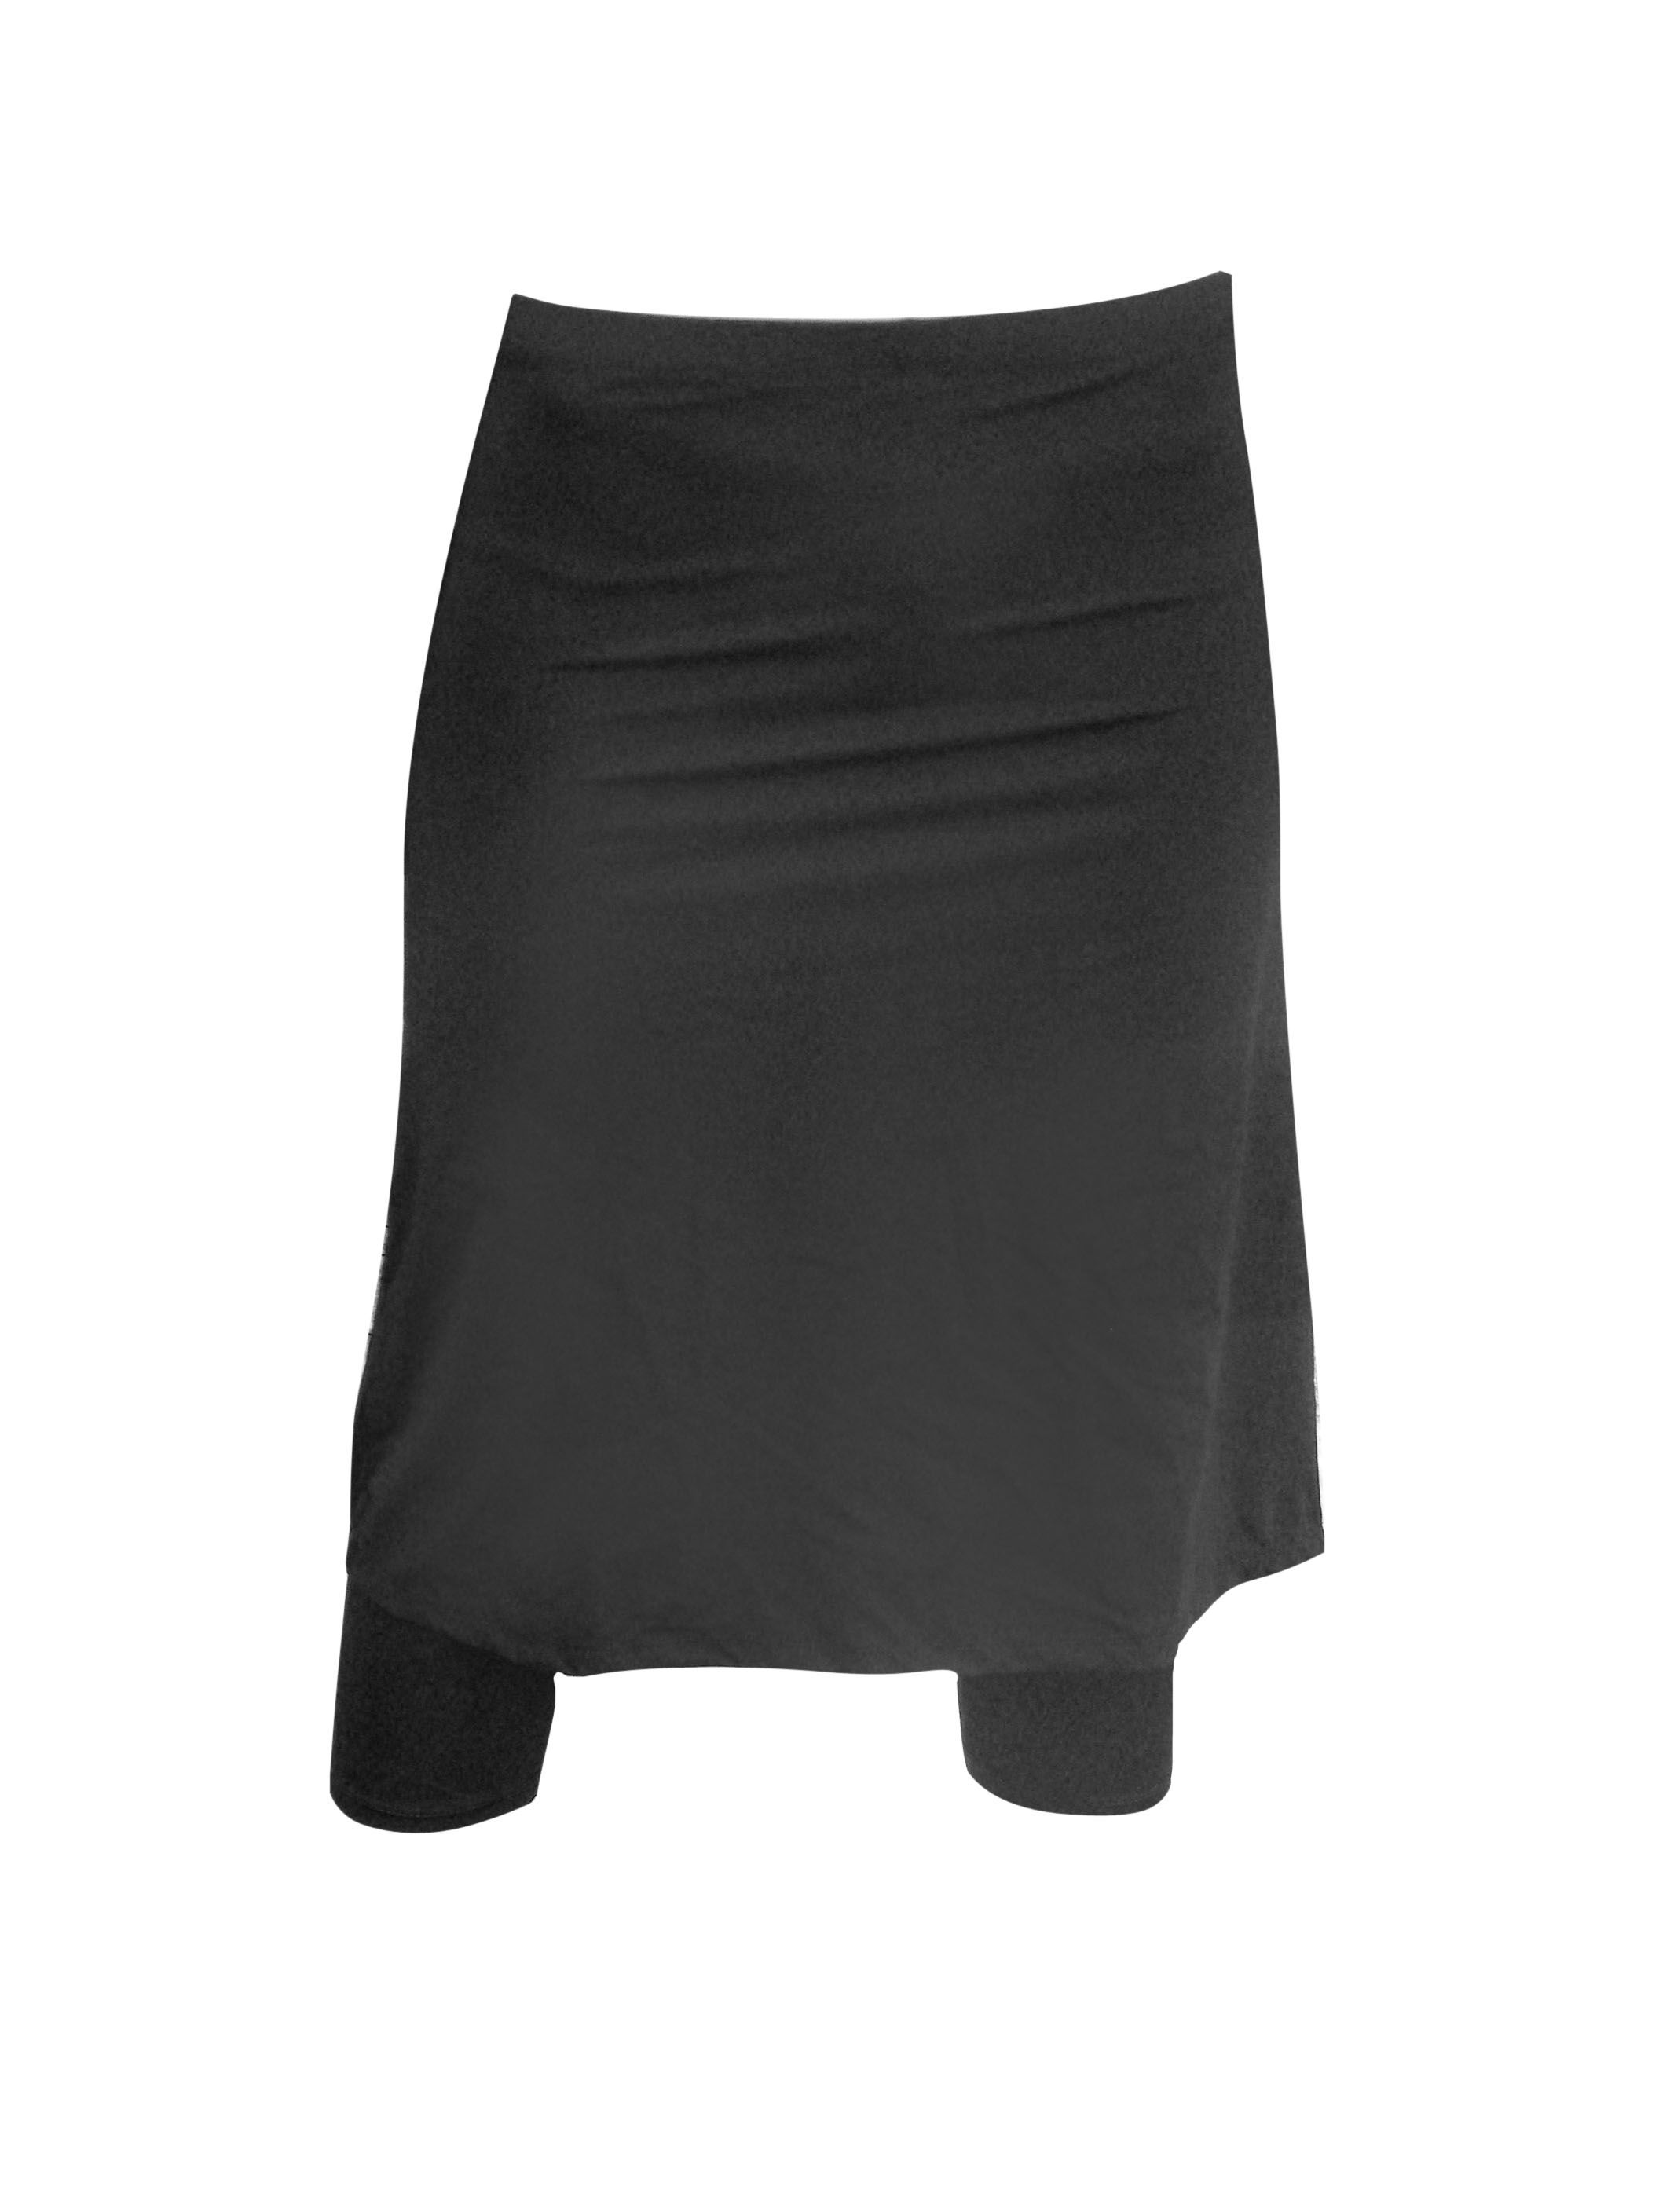 0776c8bb3b Lightweight Running Skirt/Sports Skirt with Leggings from Kosher Kasual.  Available in Royal Blue or Black $42